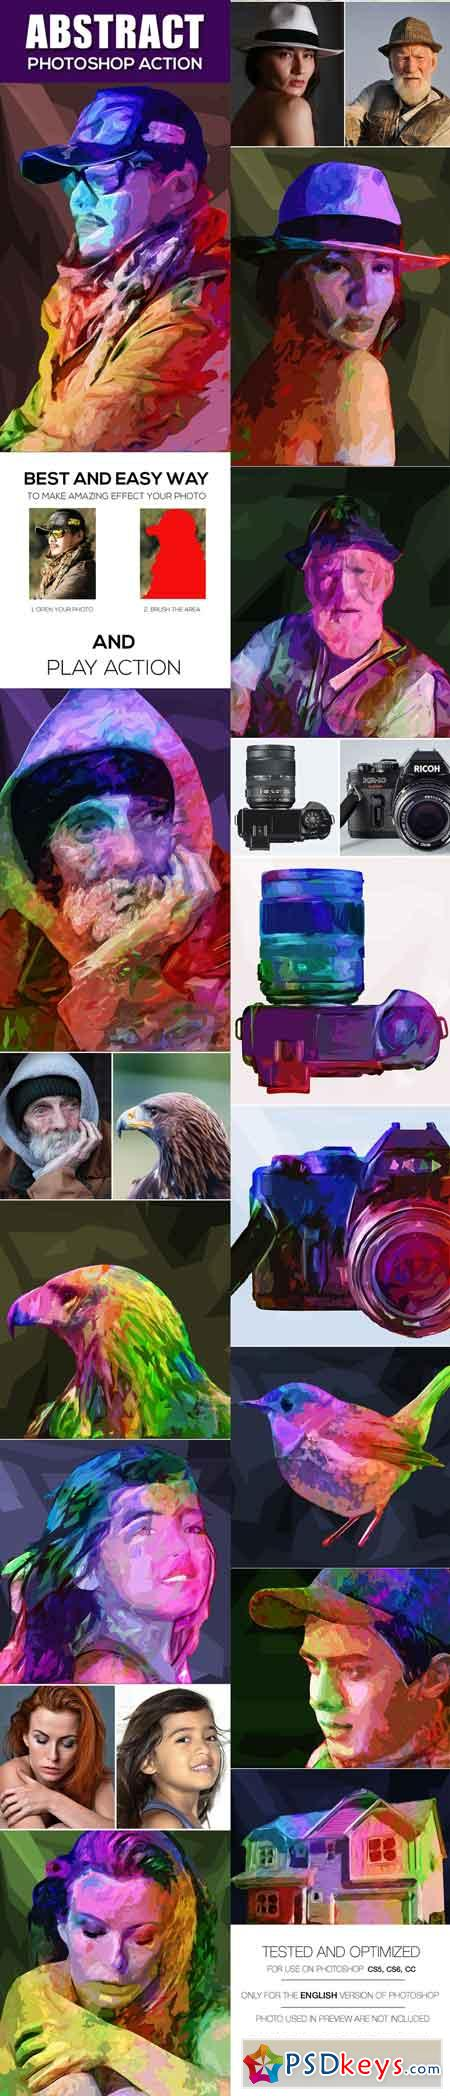 Abstract Photoshop Action Photo Effects